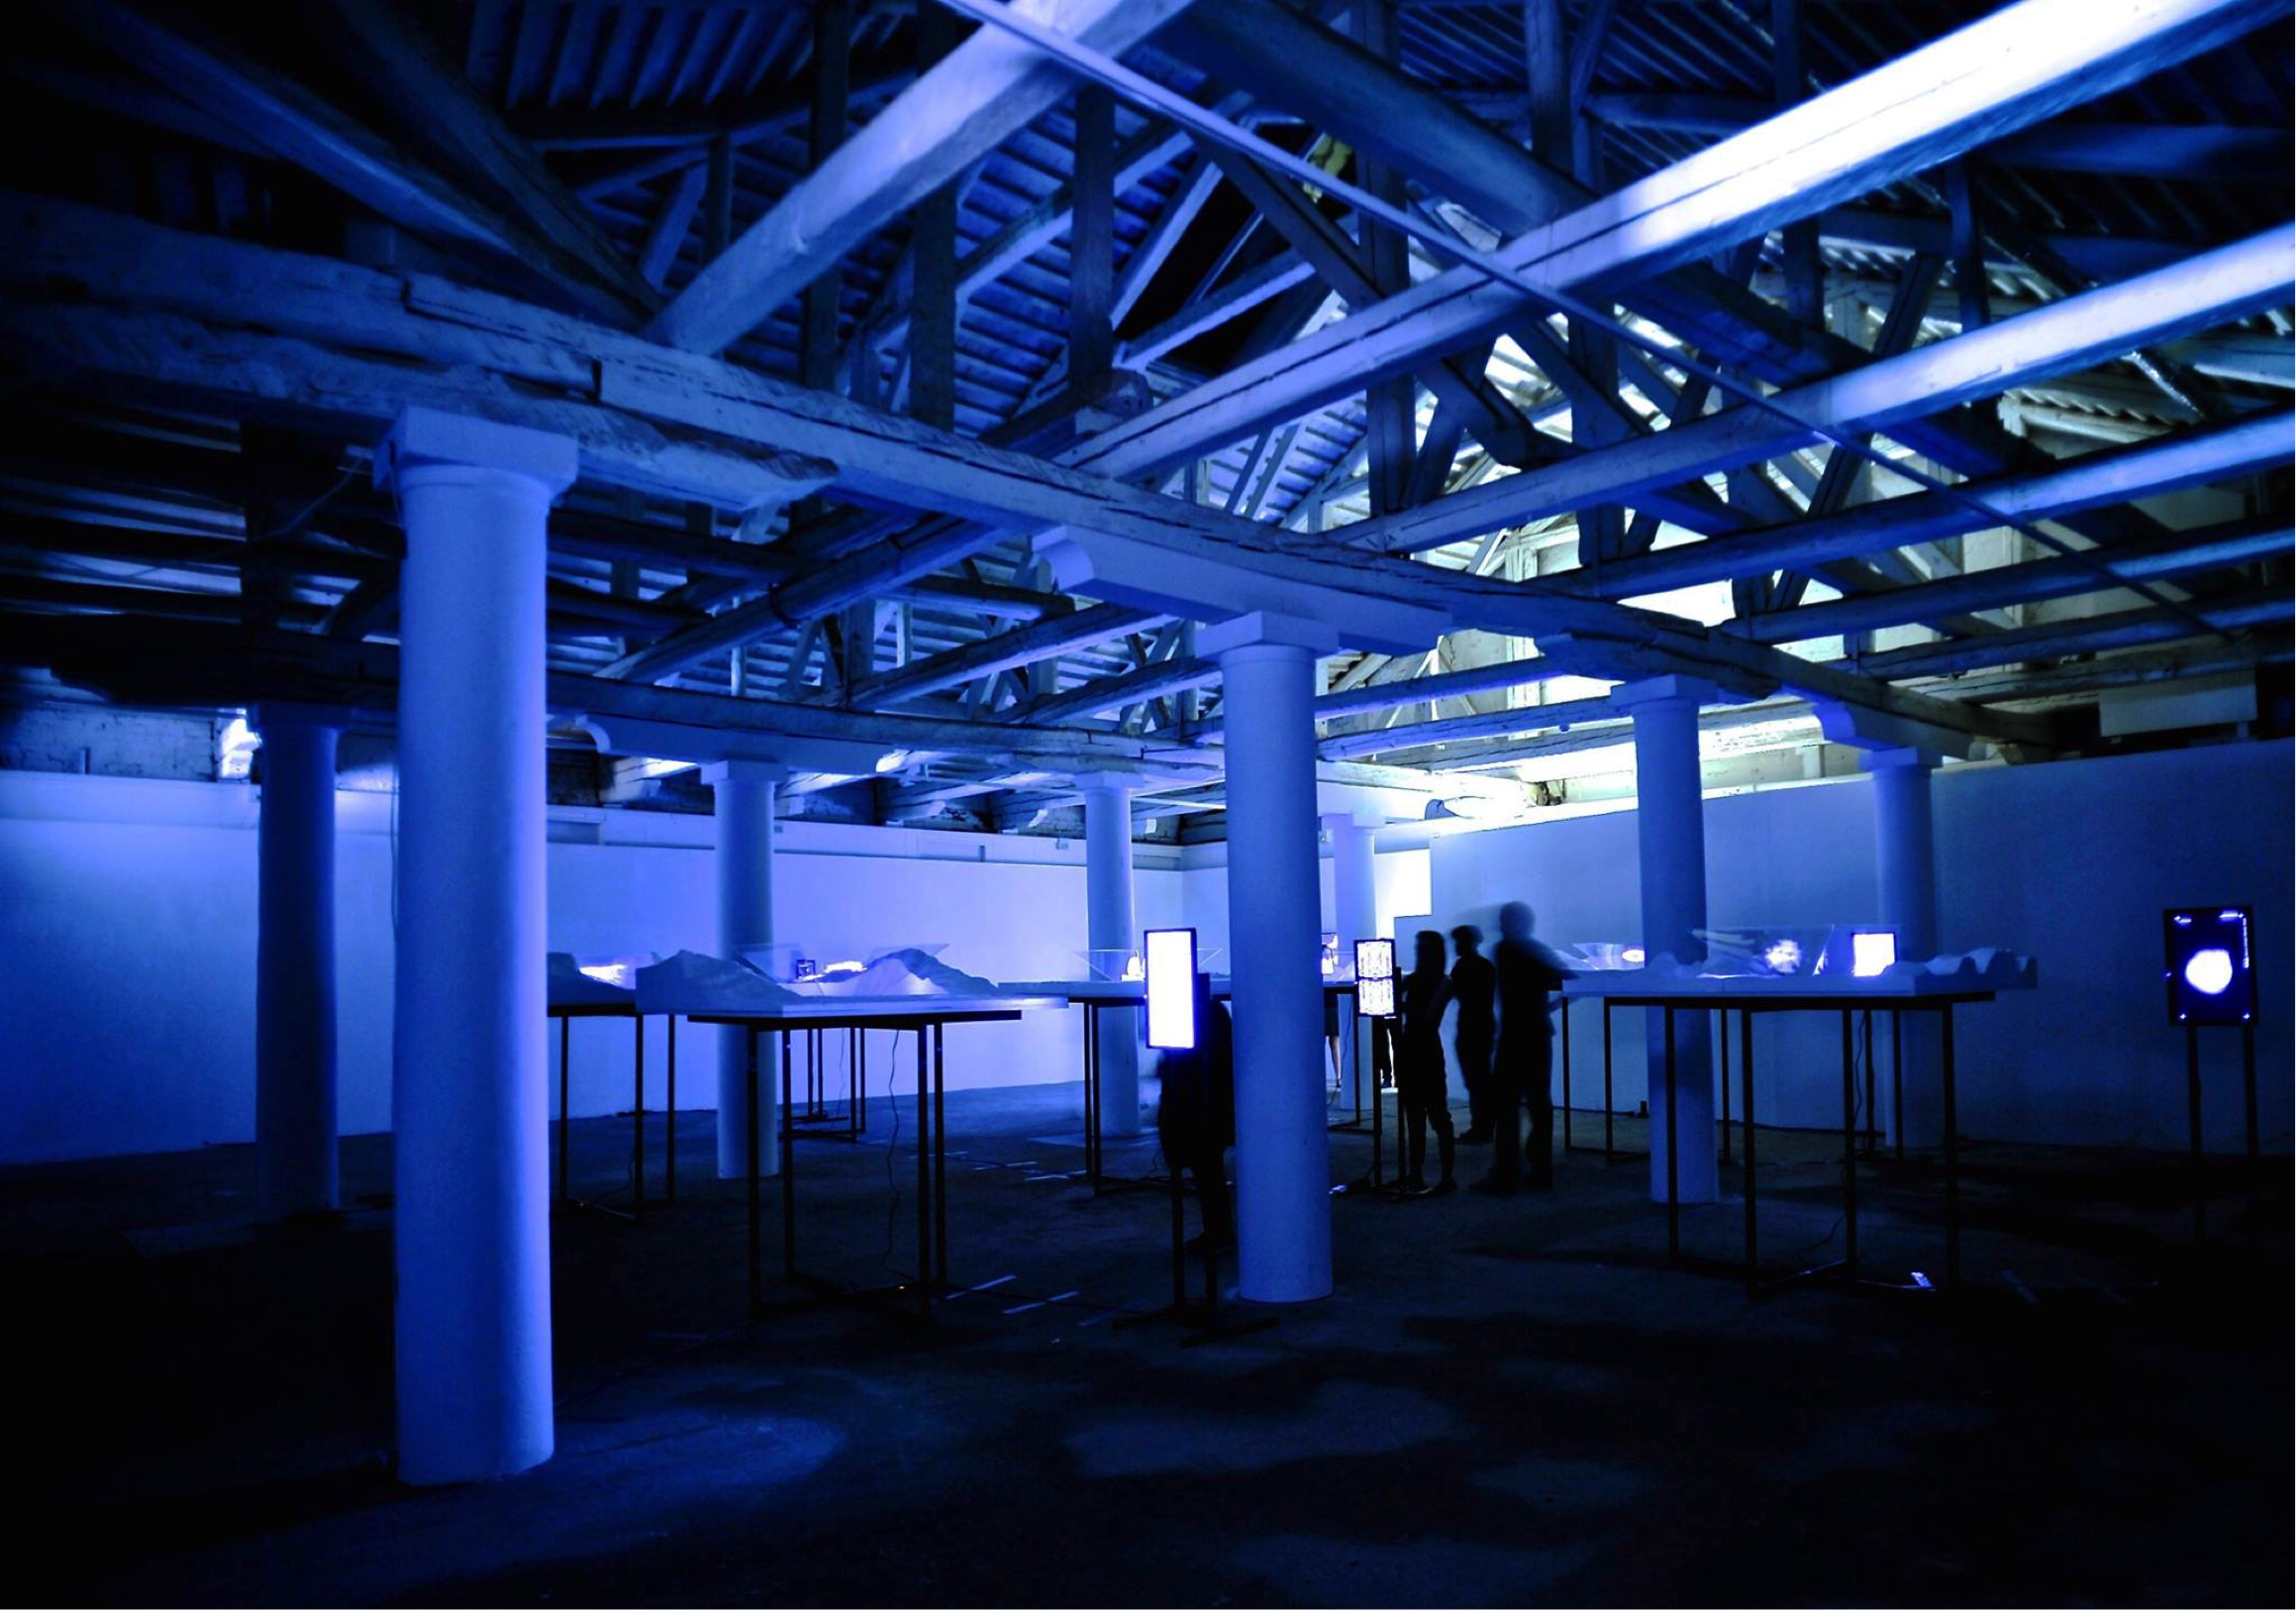 The Antarctic Pavilion, titled Re-cyclical, at the 15th Venice Biennale of Architecture.